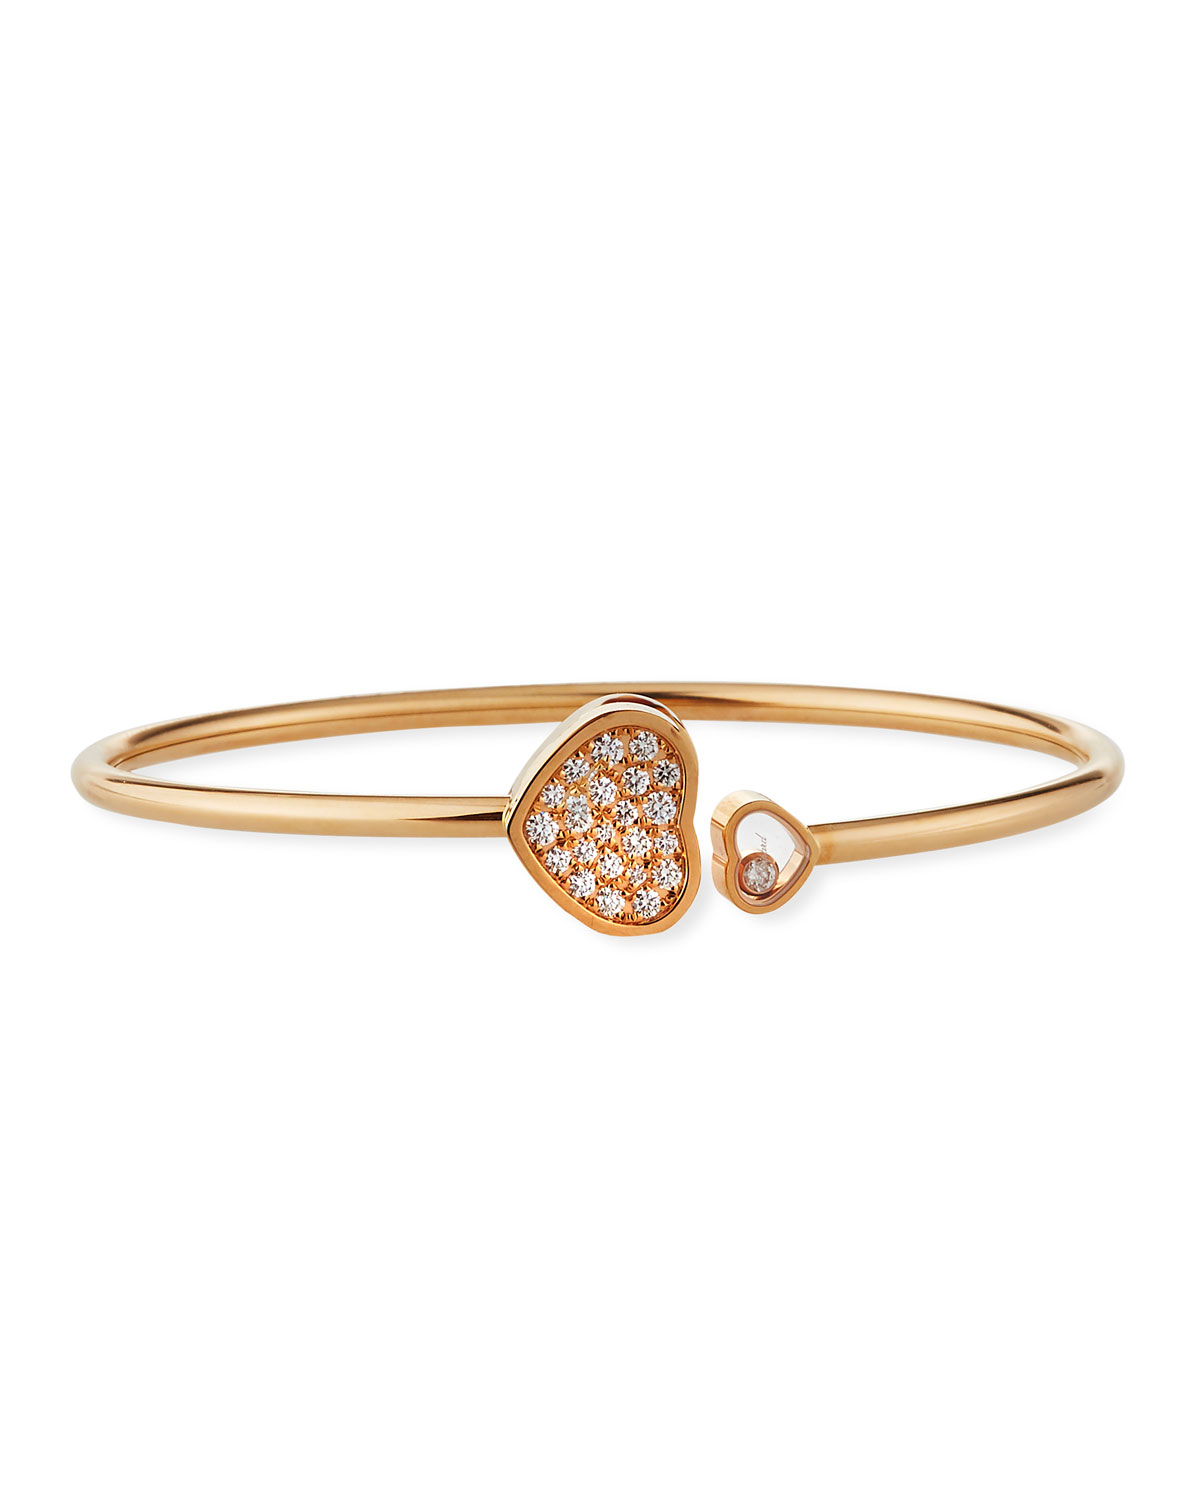 Chopard HAPPY HEARTS 18K ROSE GOLD PAVE DIAMOND BANGLE BRACELET